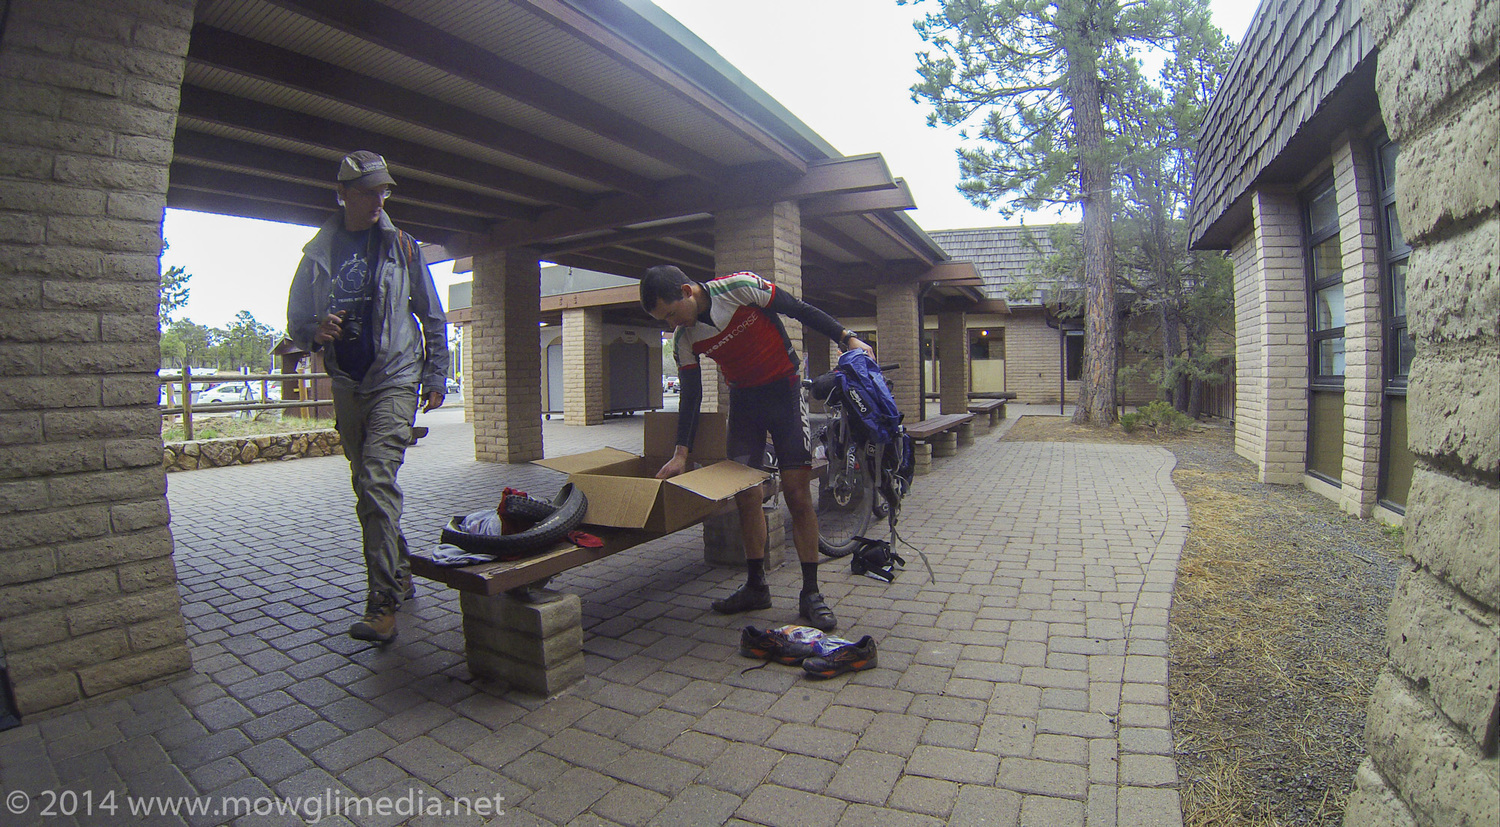 Unpacking my hiking gear at the South Rim post office